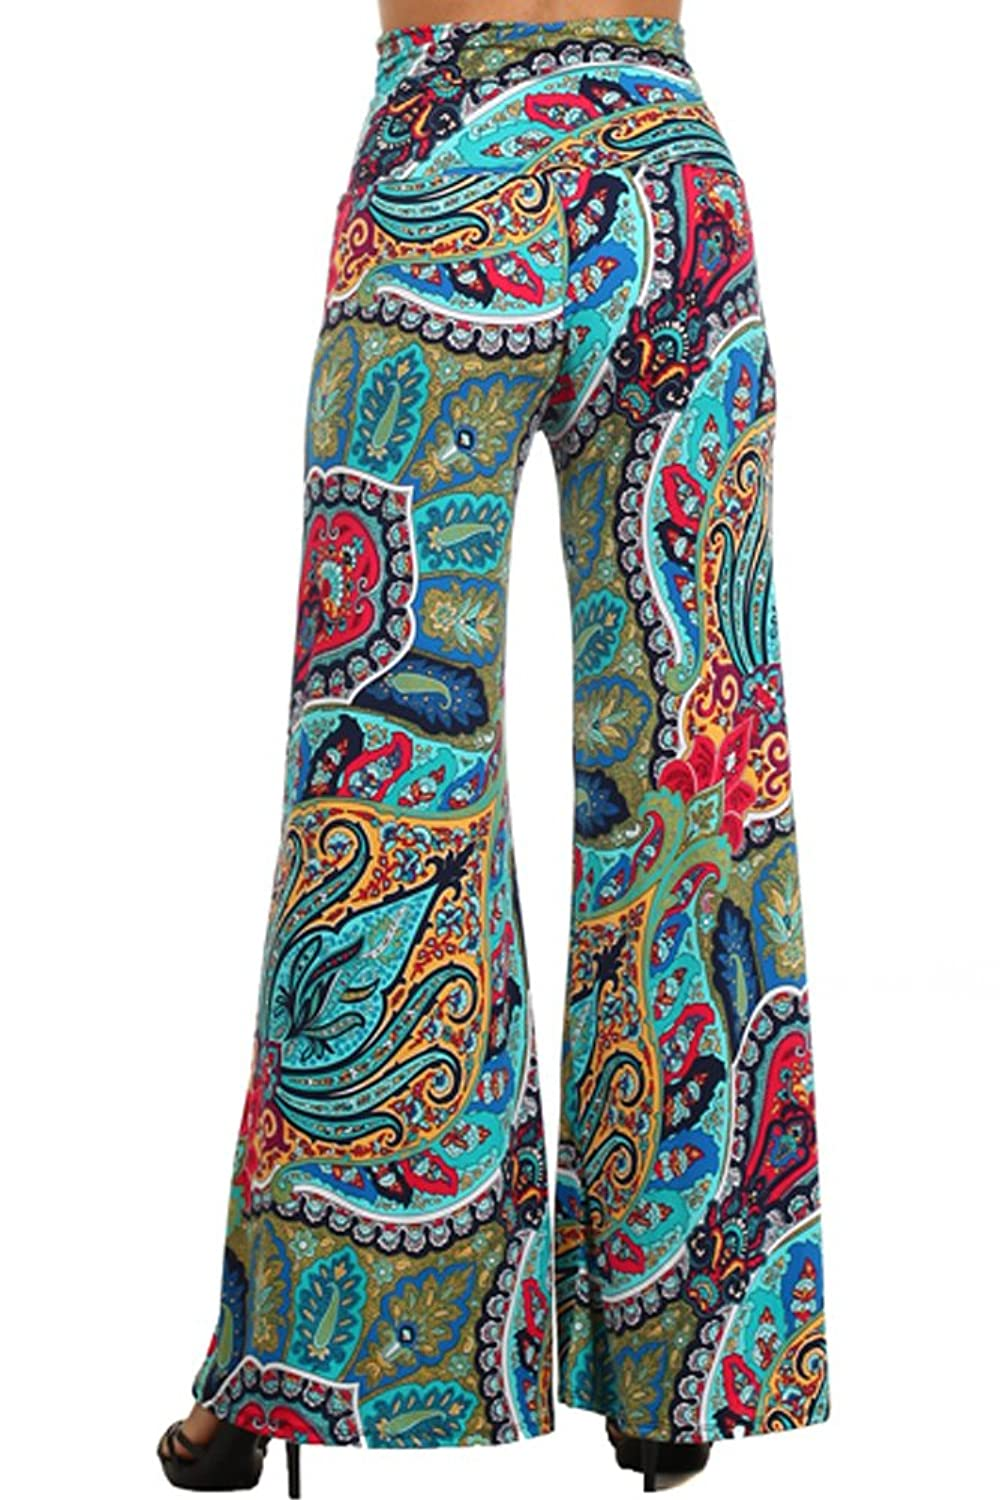 (Plus Size) Womens Paisley Print High Waist Palazzo Pants (Made in U.S.A)